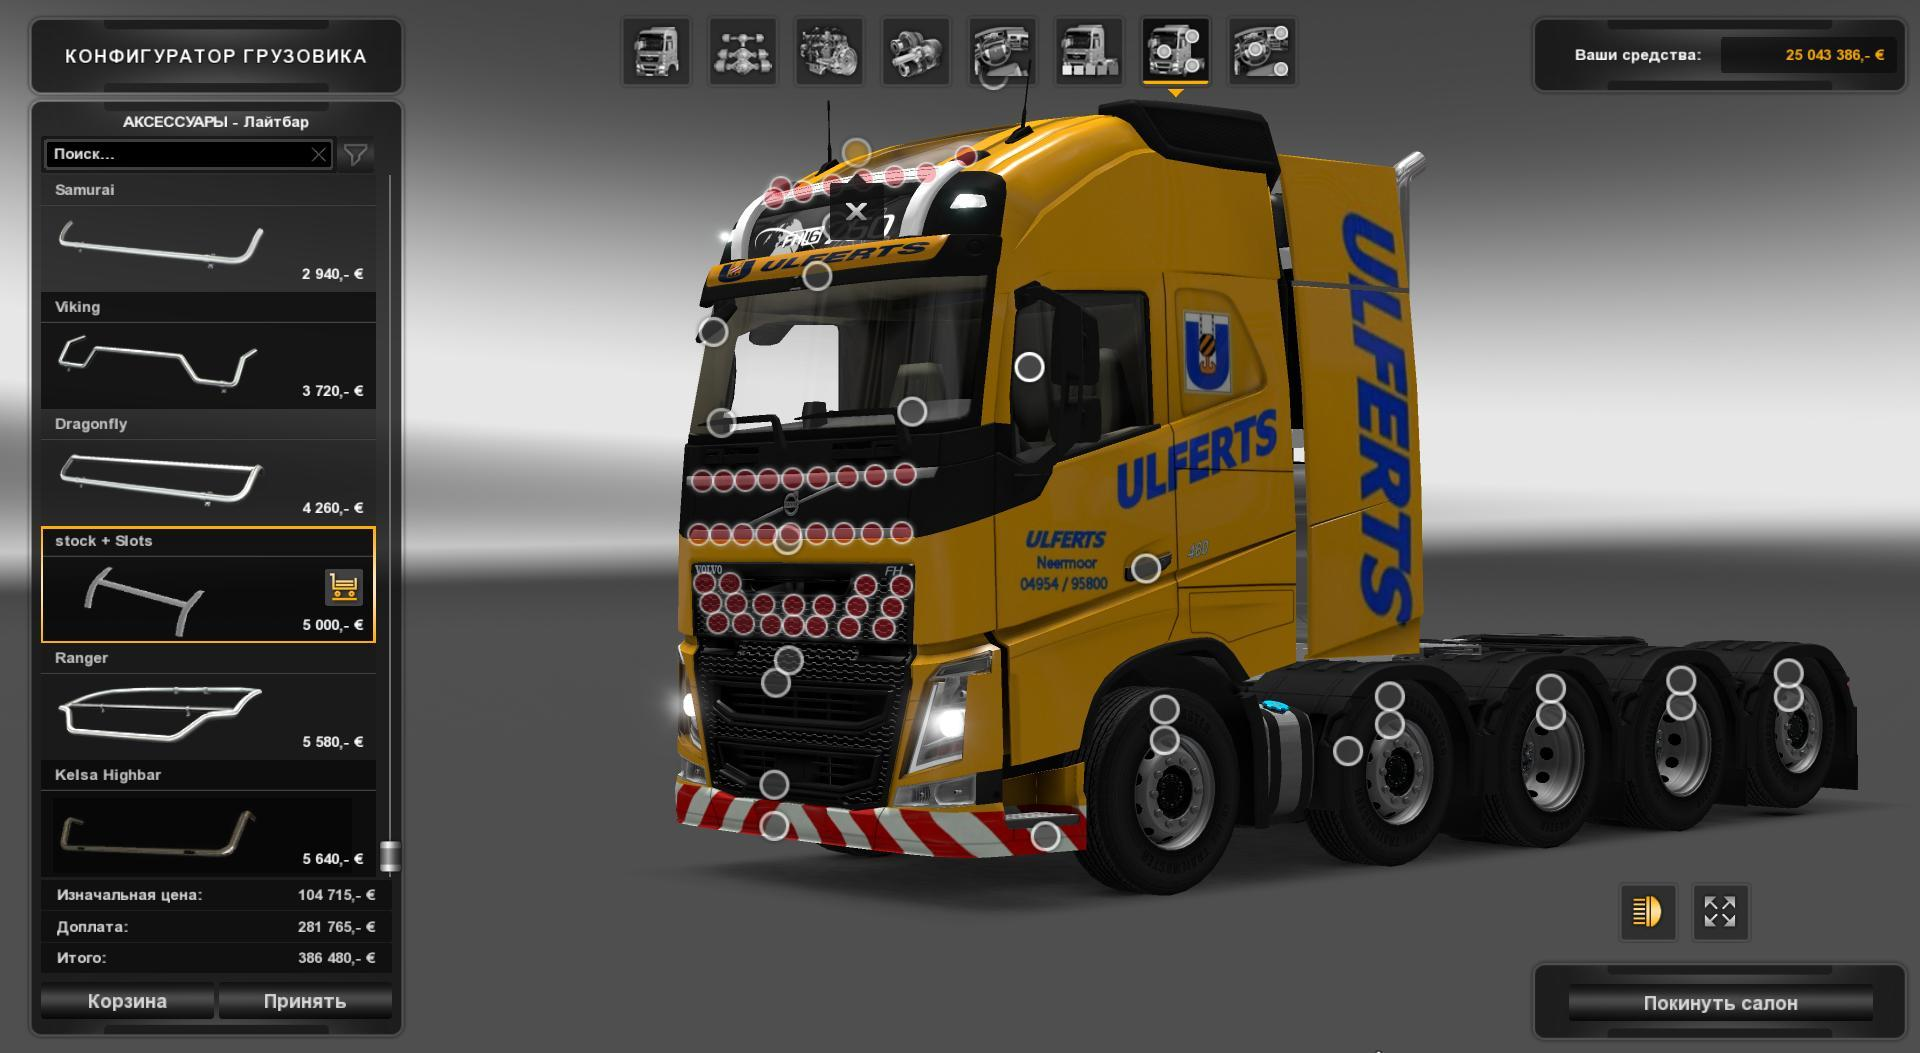 VOLVO FH 2012 8X4 AND 10X4 V9.2 TRUCK MOD - ETS2 Mod